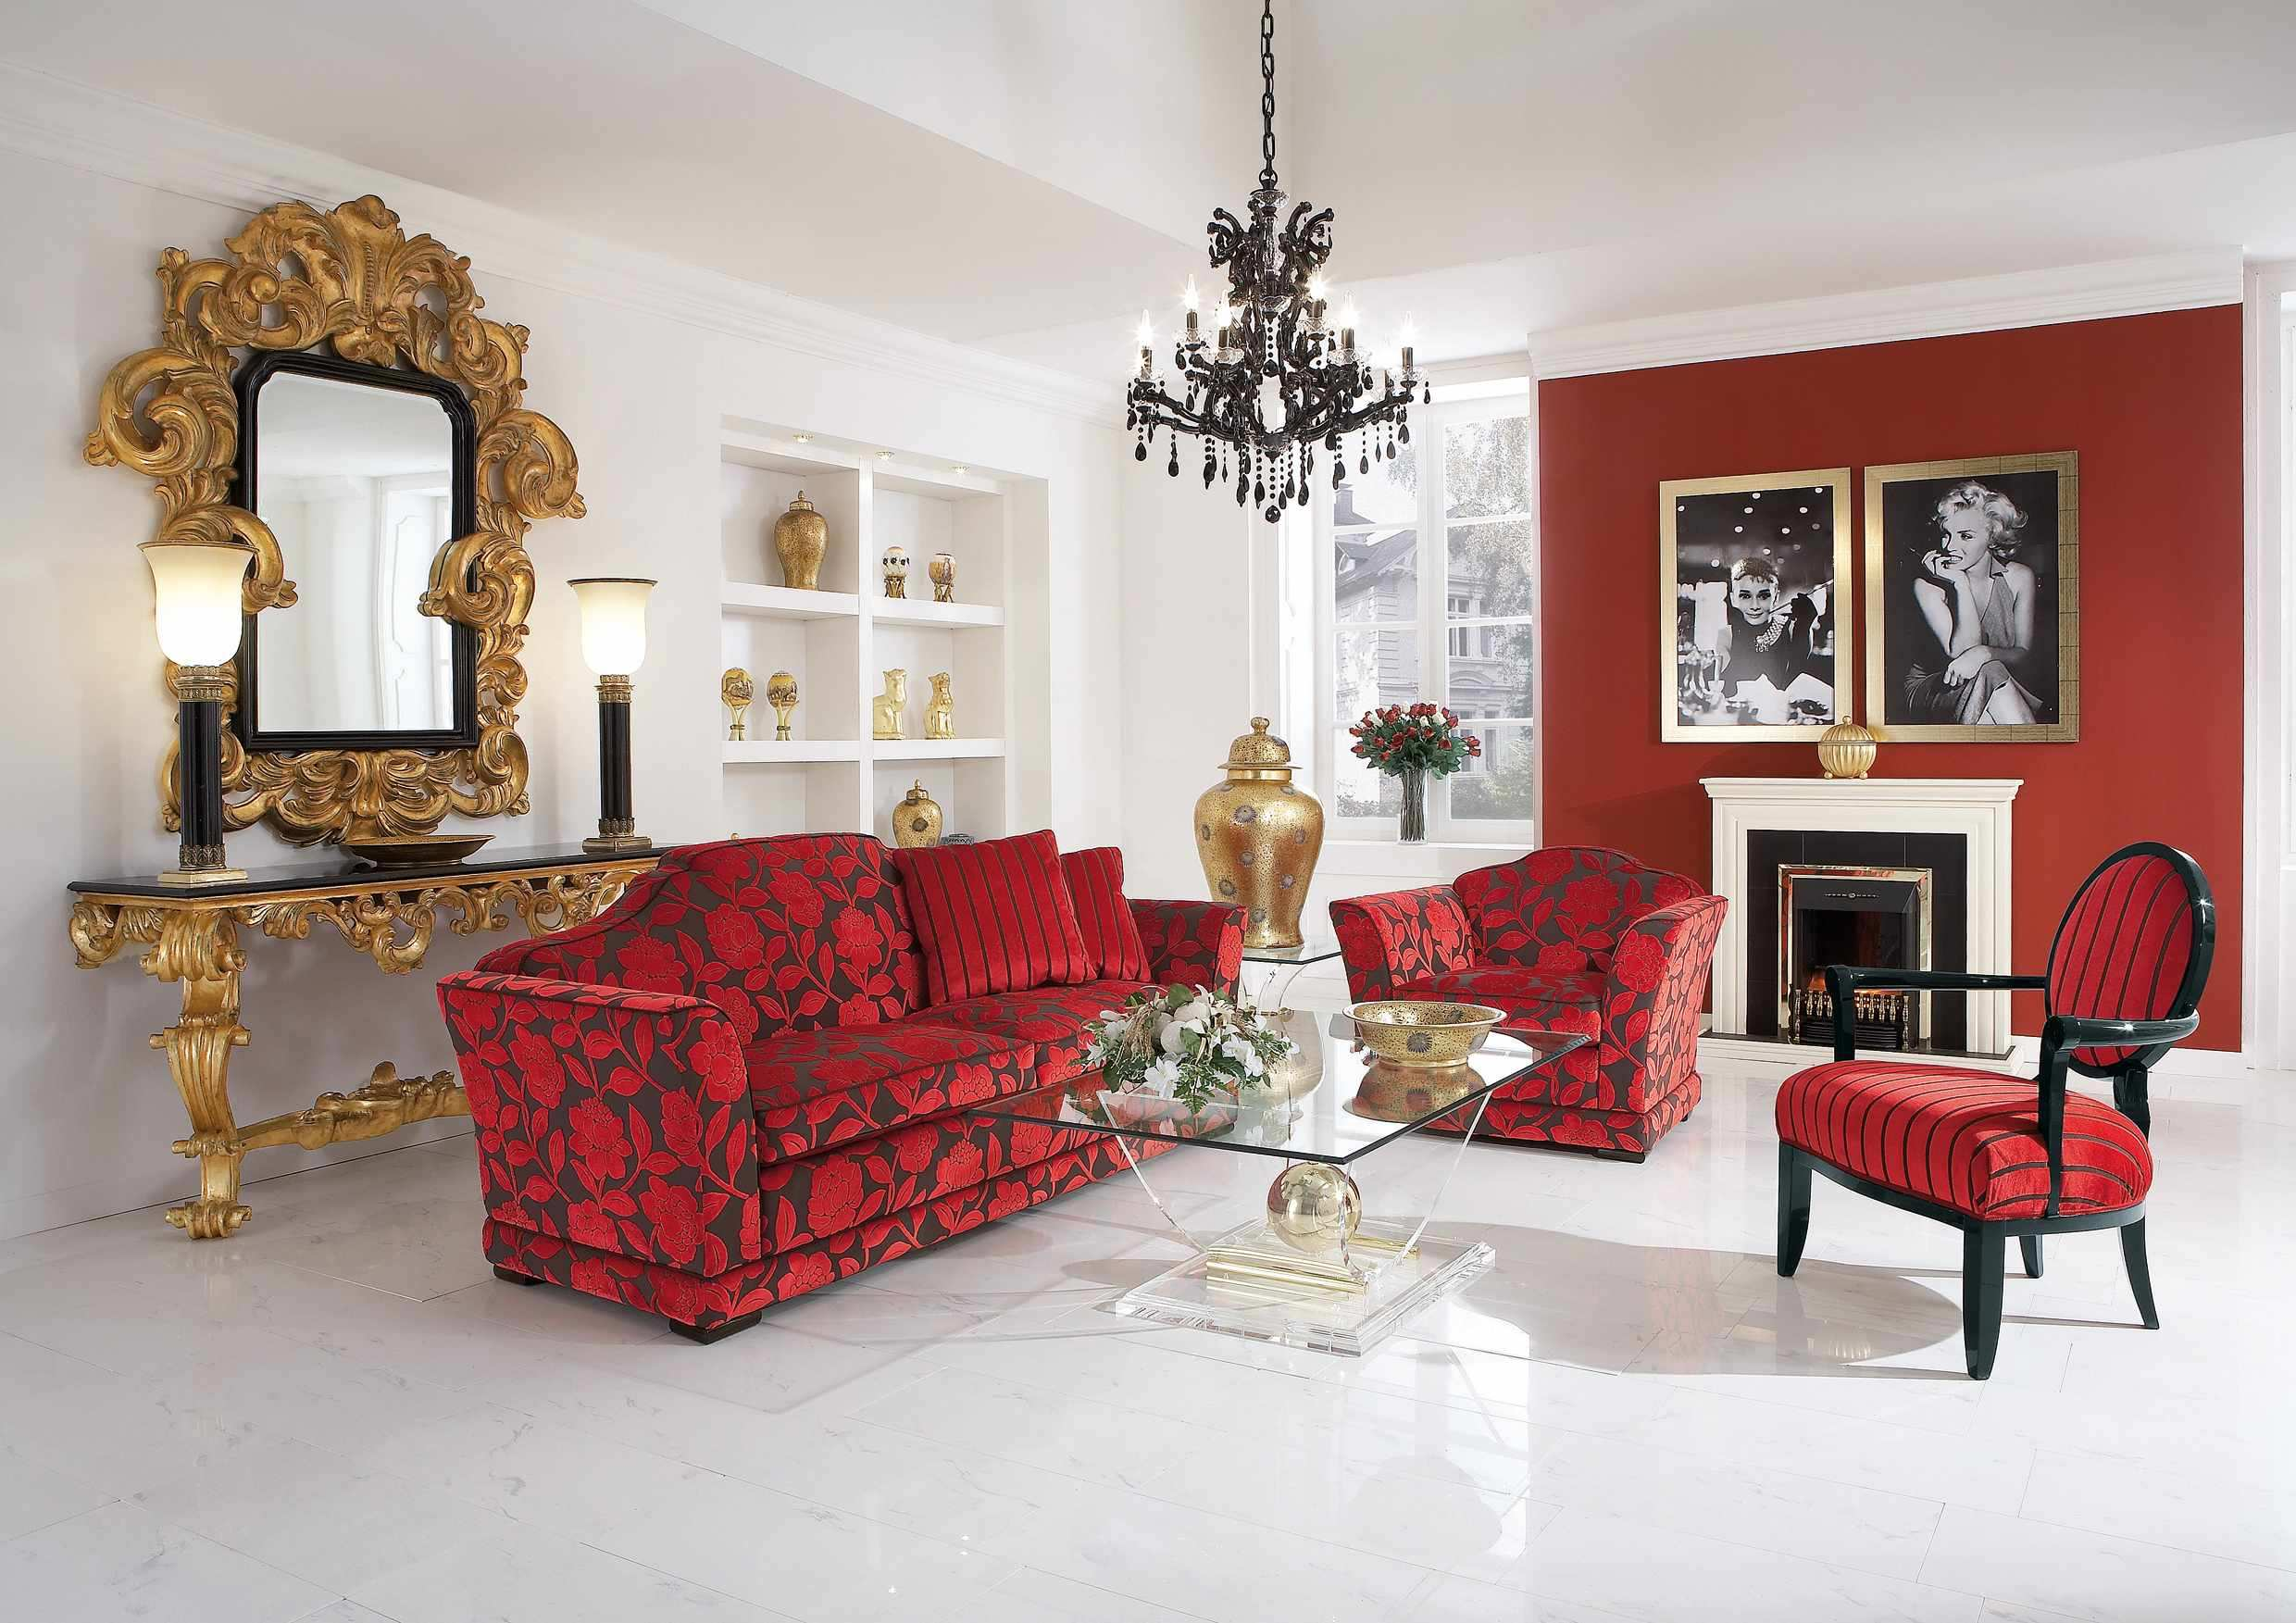 Red Accent Chairs For Living Room Jeeworld | Jeeworld.com